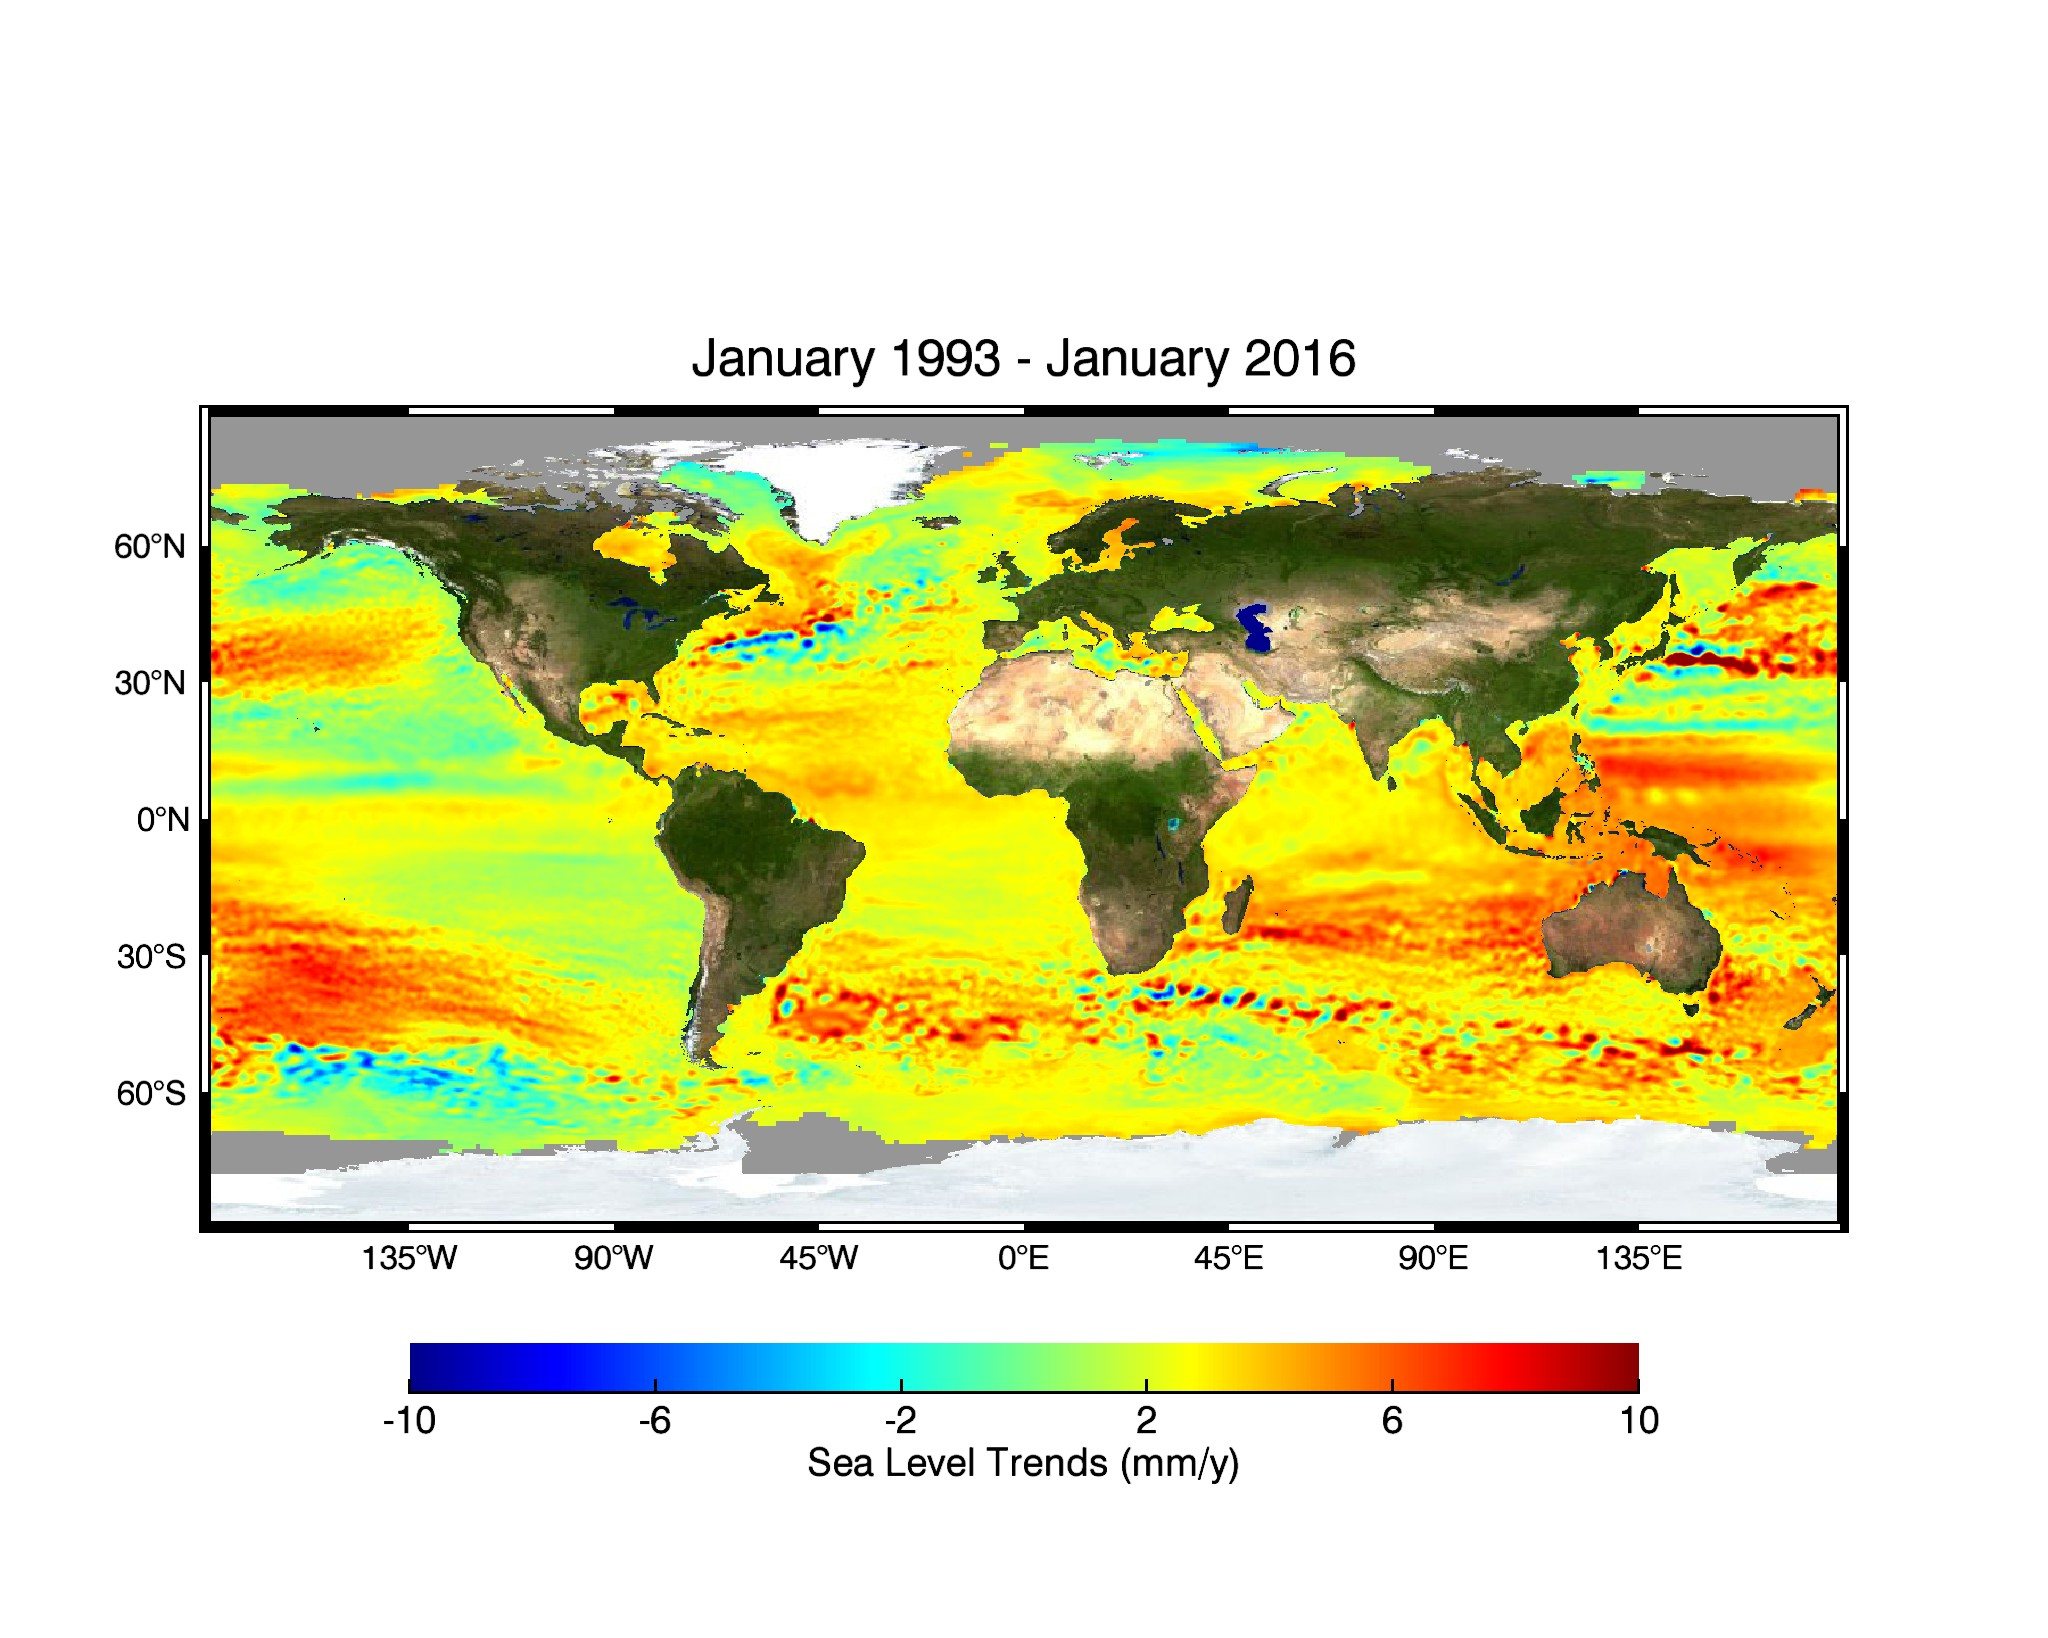 Figure 3: This image shows the surface height of the oceans. This image shows the 20 year trend of rising surfaces across the Earth from 1993 to 2016. The hot red coloured areas show regions where the sea surface has risen up to 10 mm per year. The cold blue areas show regions where the sea surface has dropped up to 10 mm per year. The surface height of the ocean is not the same everywhere. Image source:  Global Mean Sea Level by NASA .